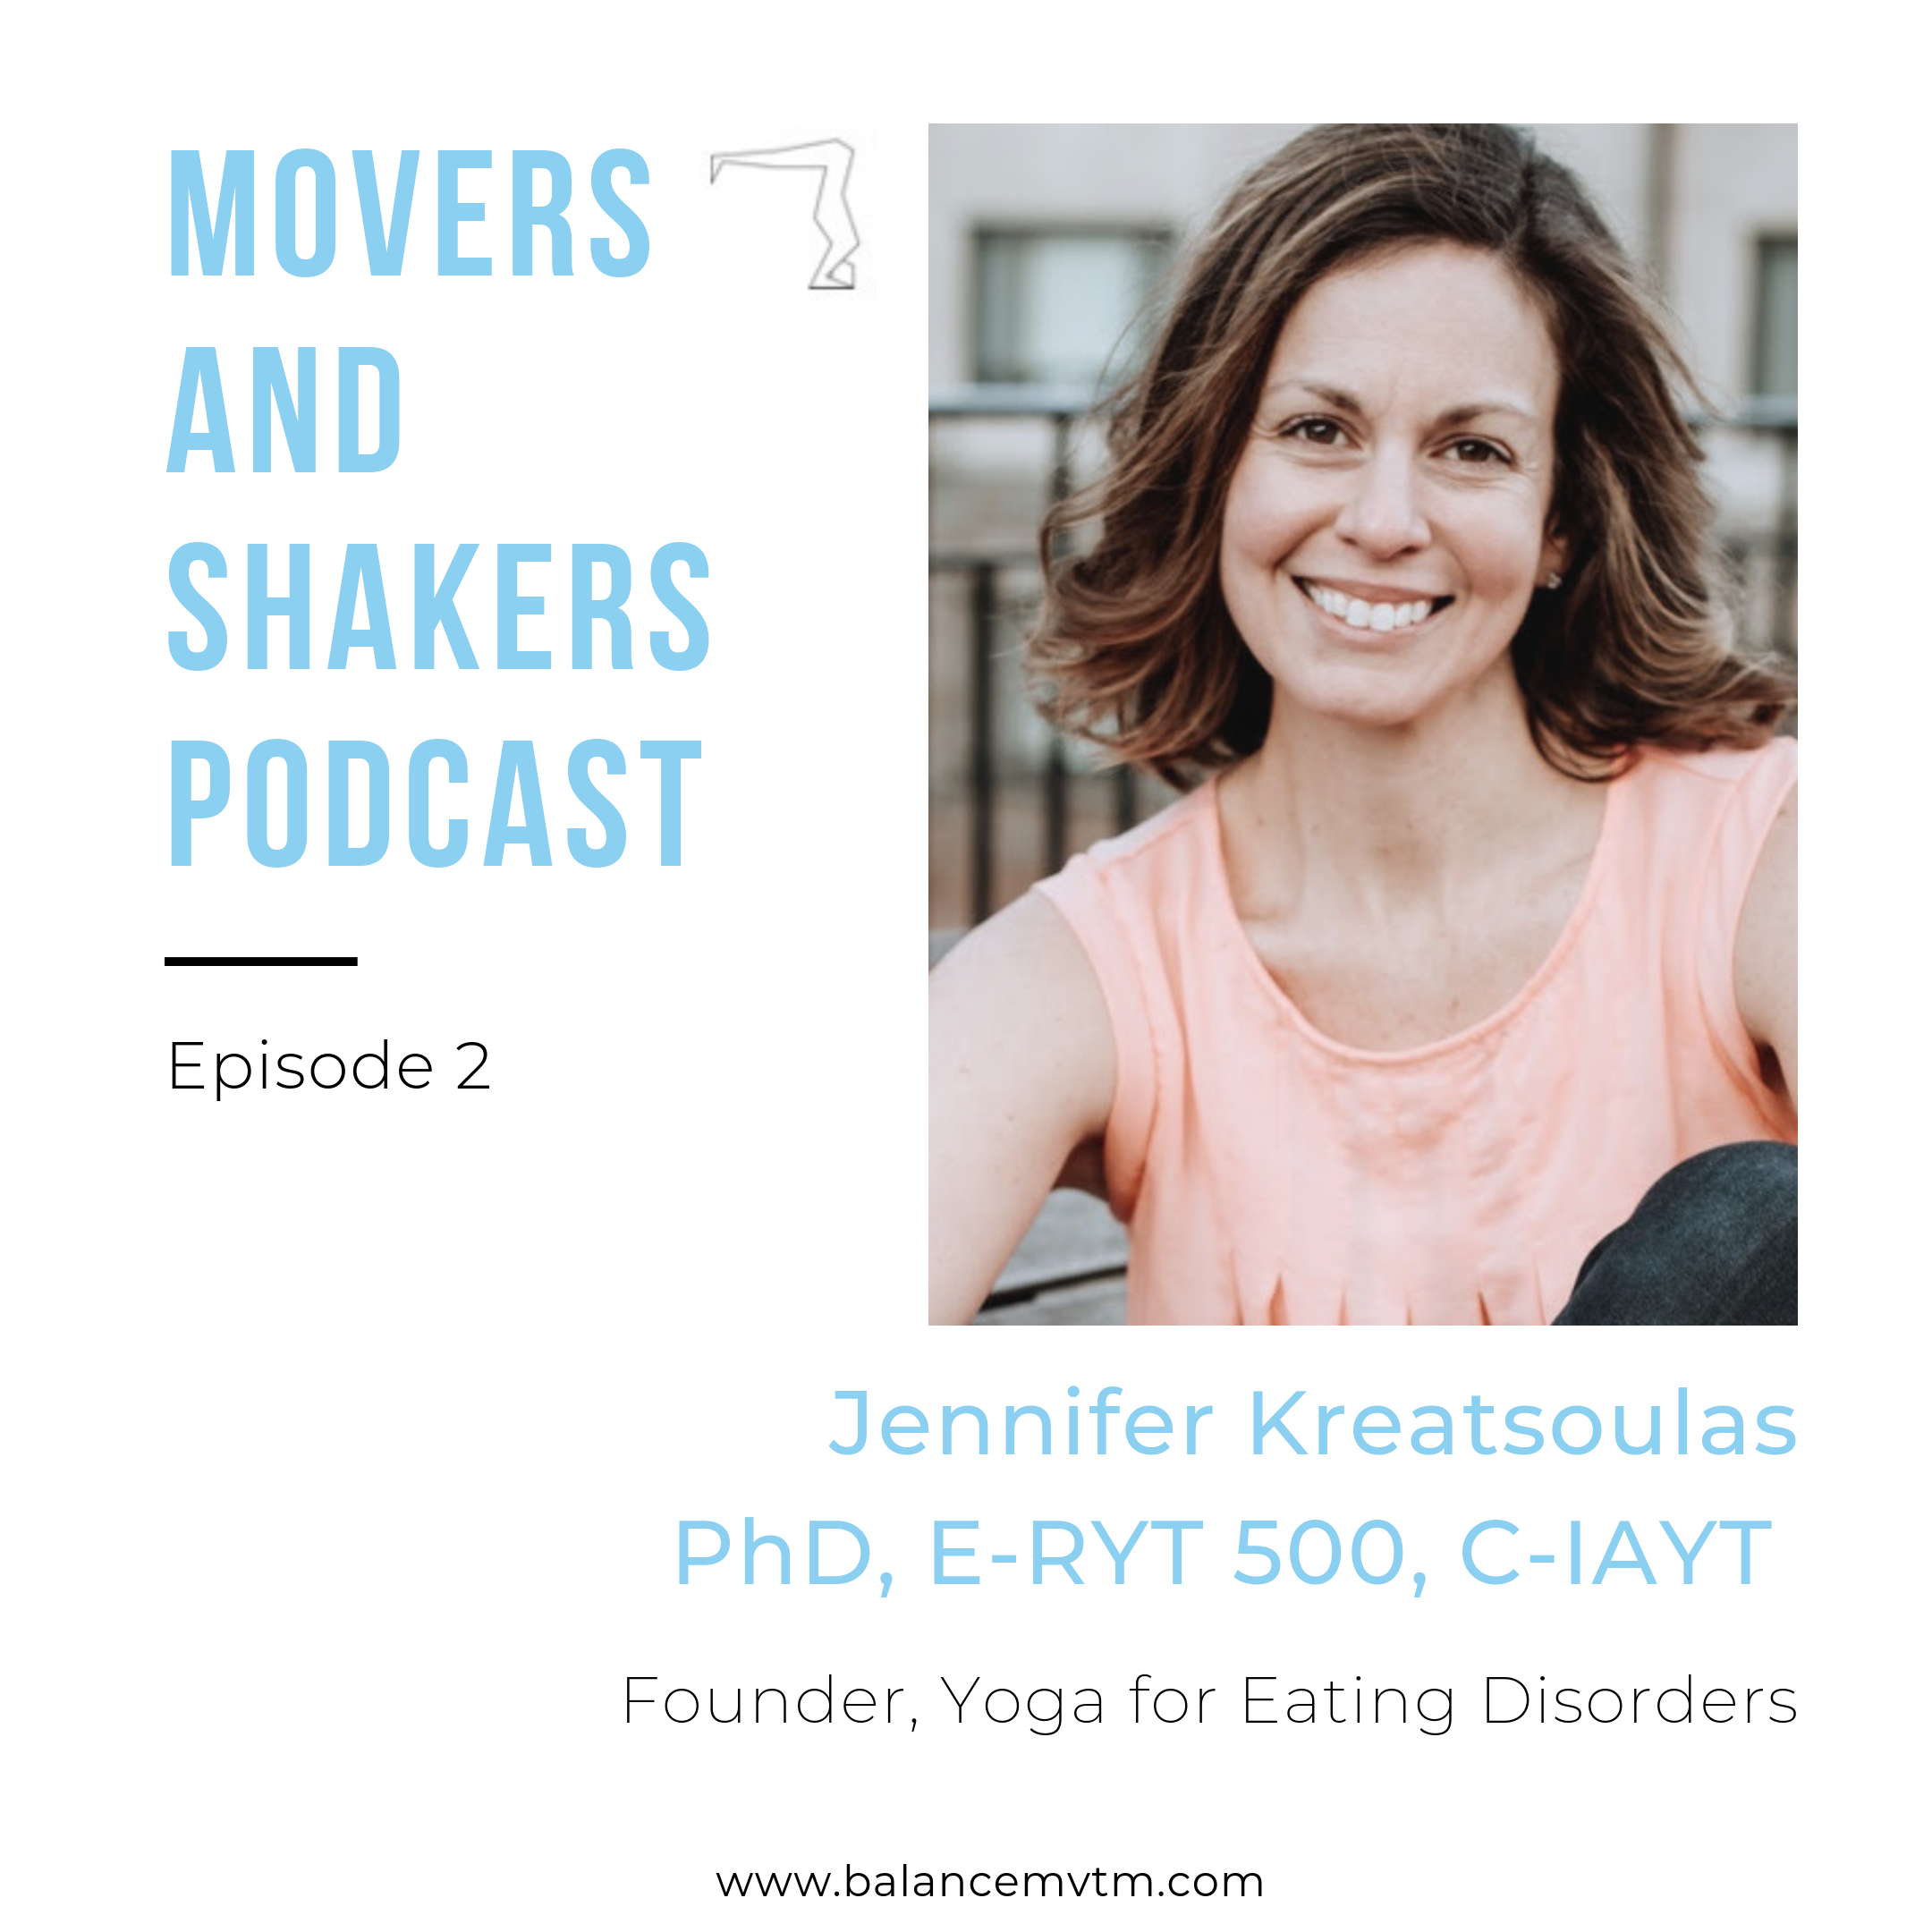 balance movers and shakers podcast - jennifer kreatsoulas yoga for eating disorders